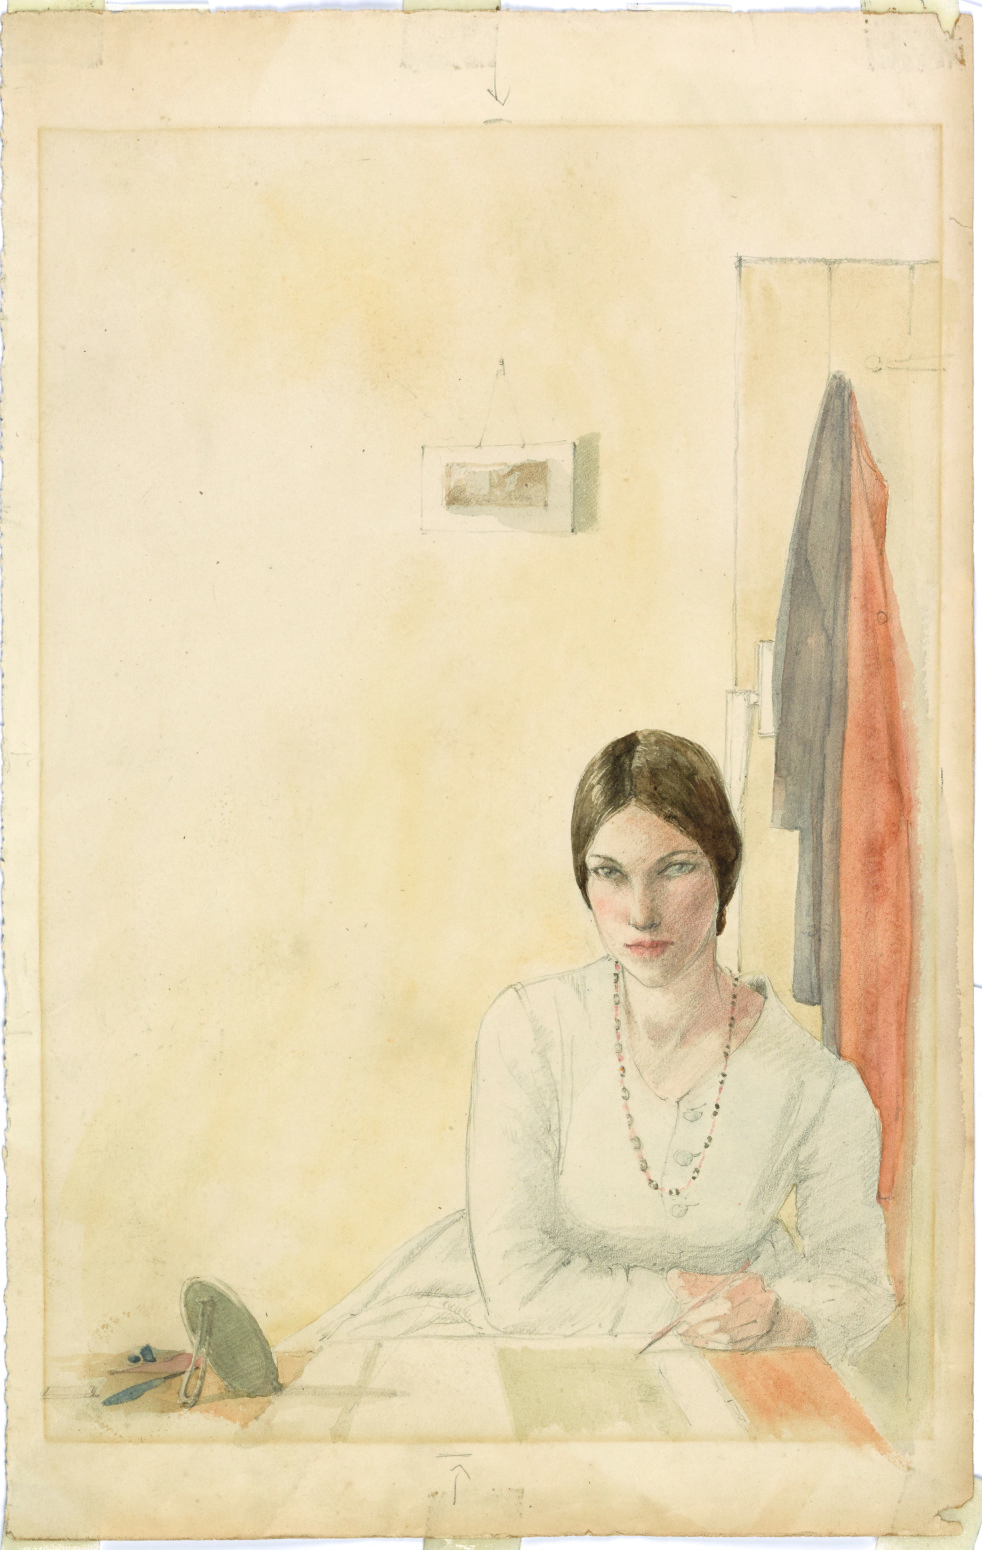 winifred-knights-self-portrait-sketching-at-a-table-c-1916